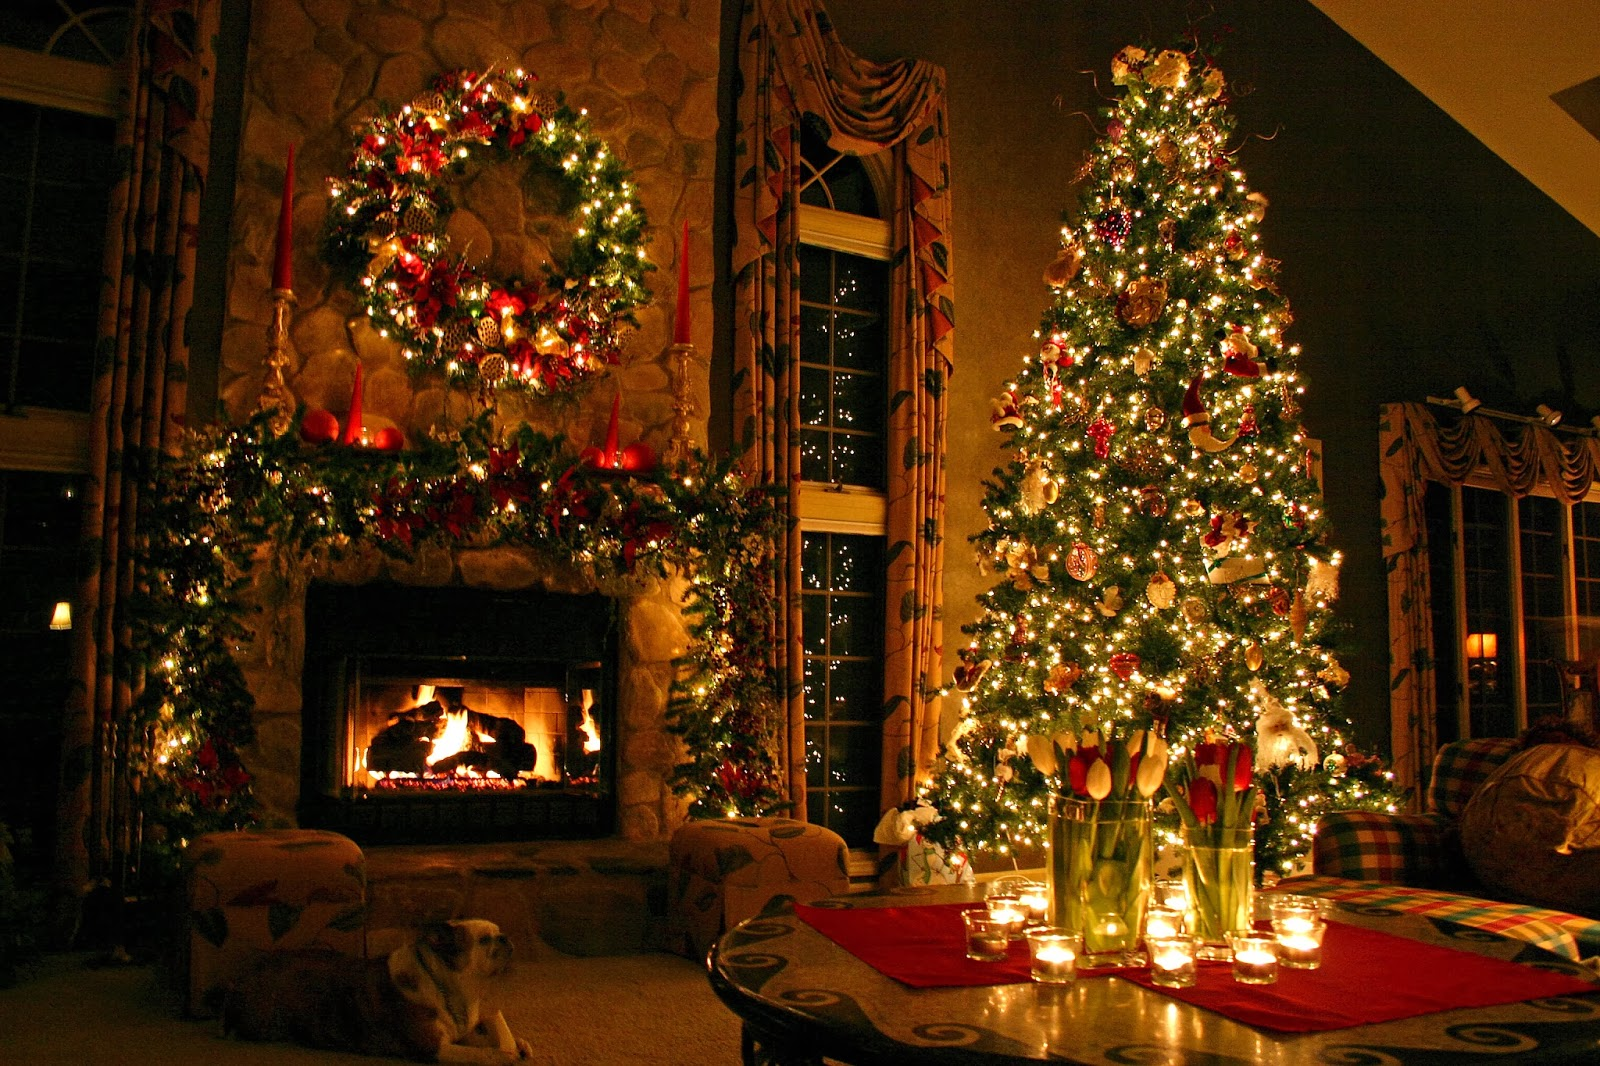 Christmas Tree HD Wallpaper - HD Wallpapers Blog